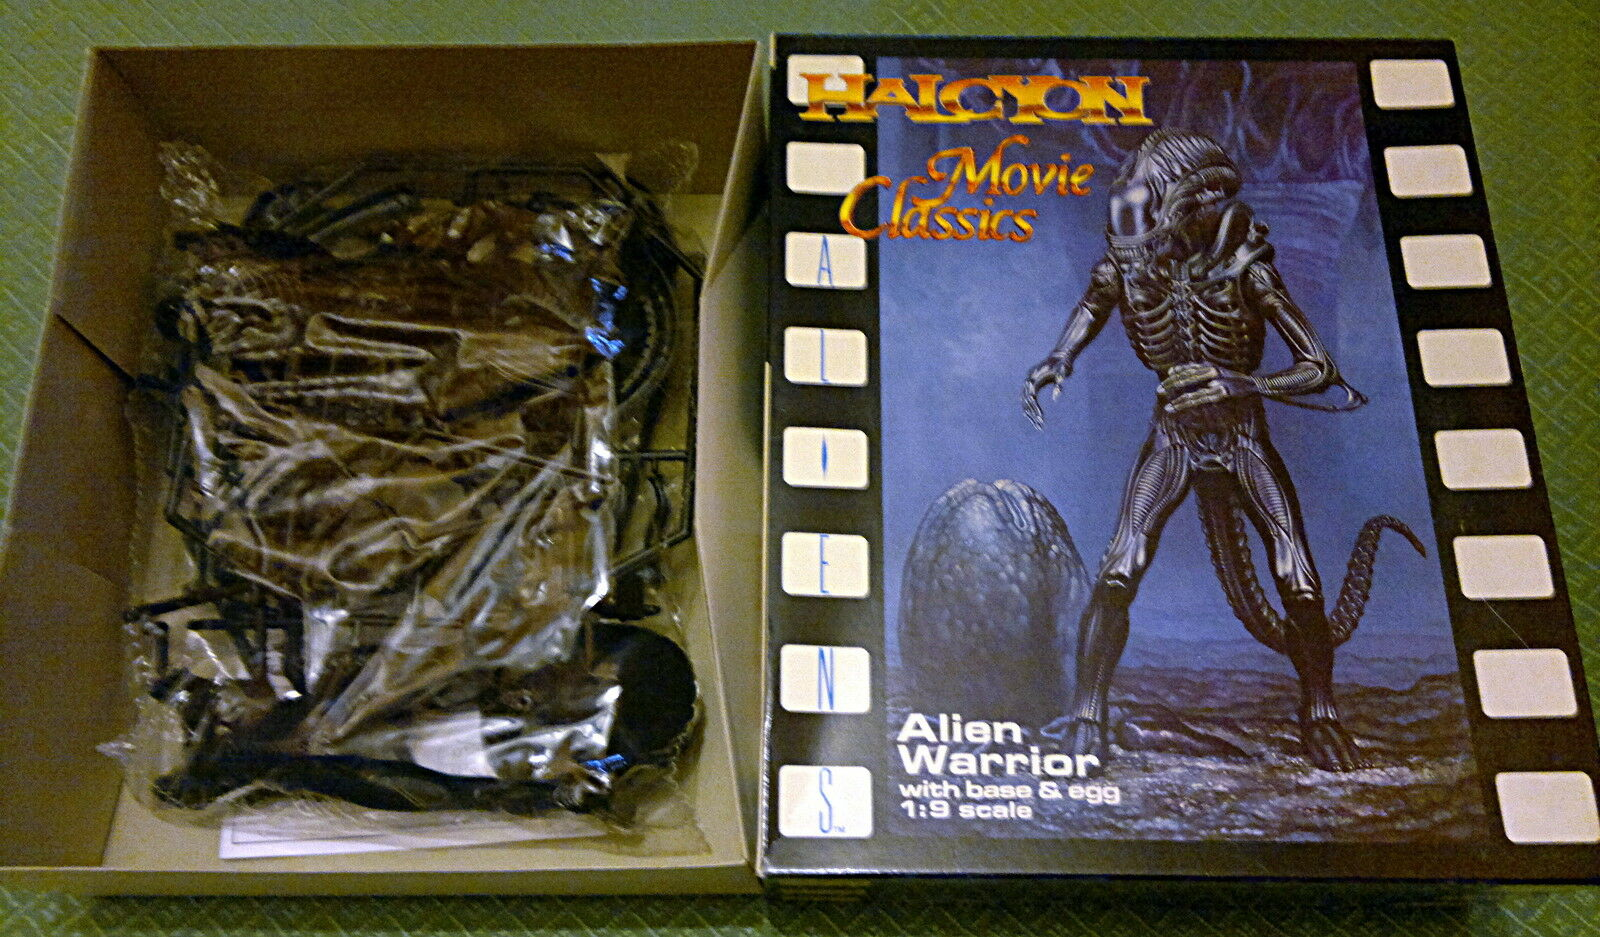 Halcyon Alien warrior with base and egg Movie Classic